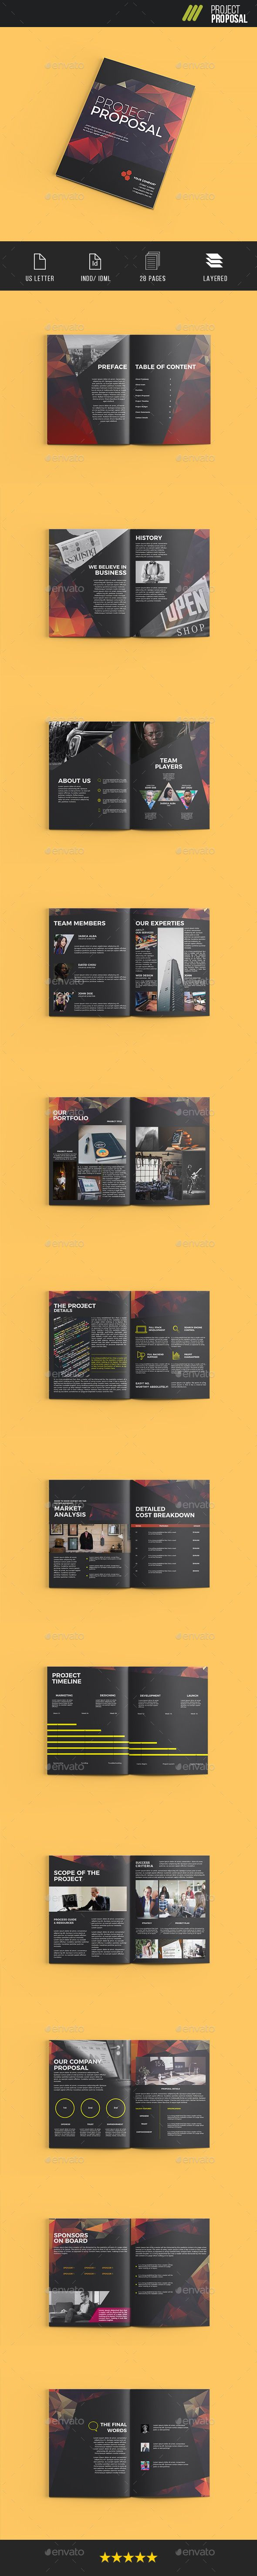 Project #Proposal - Proposals & Invoices Stationery Download Here:  https://graphicriver.net/item/project-proposal/19682611?ref=suz_562geid